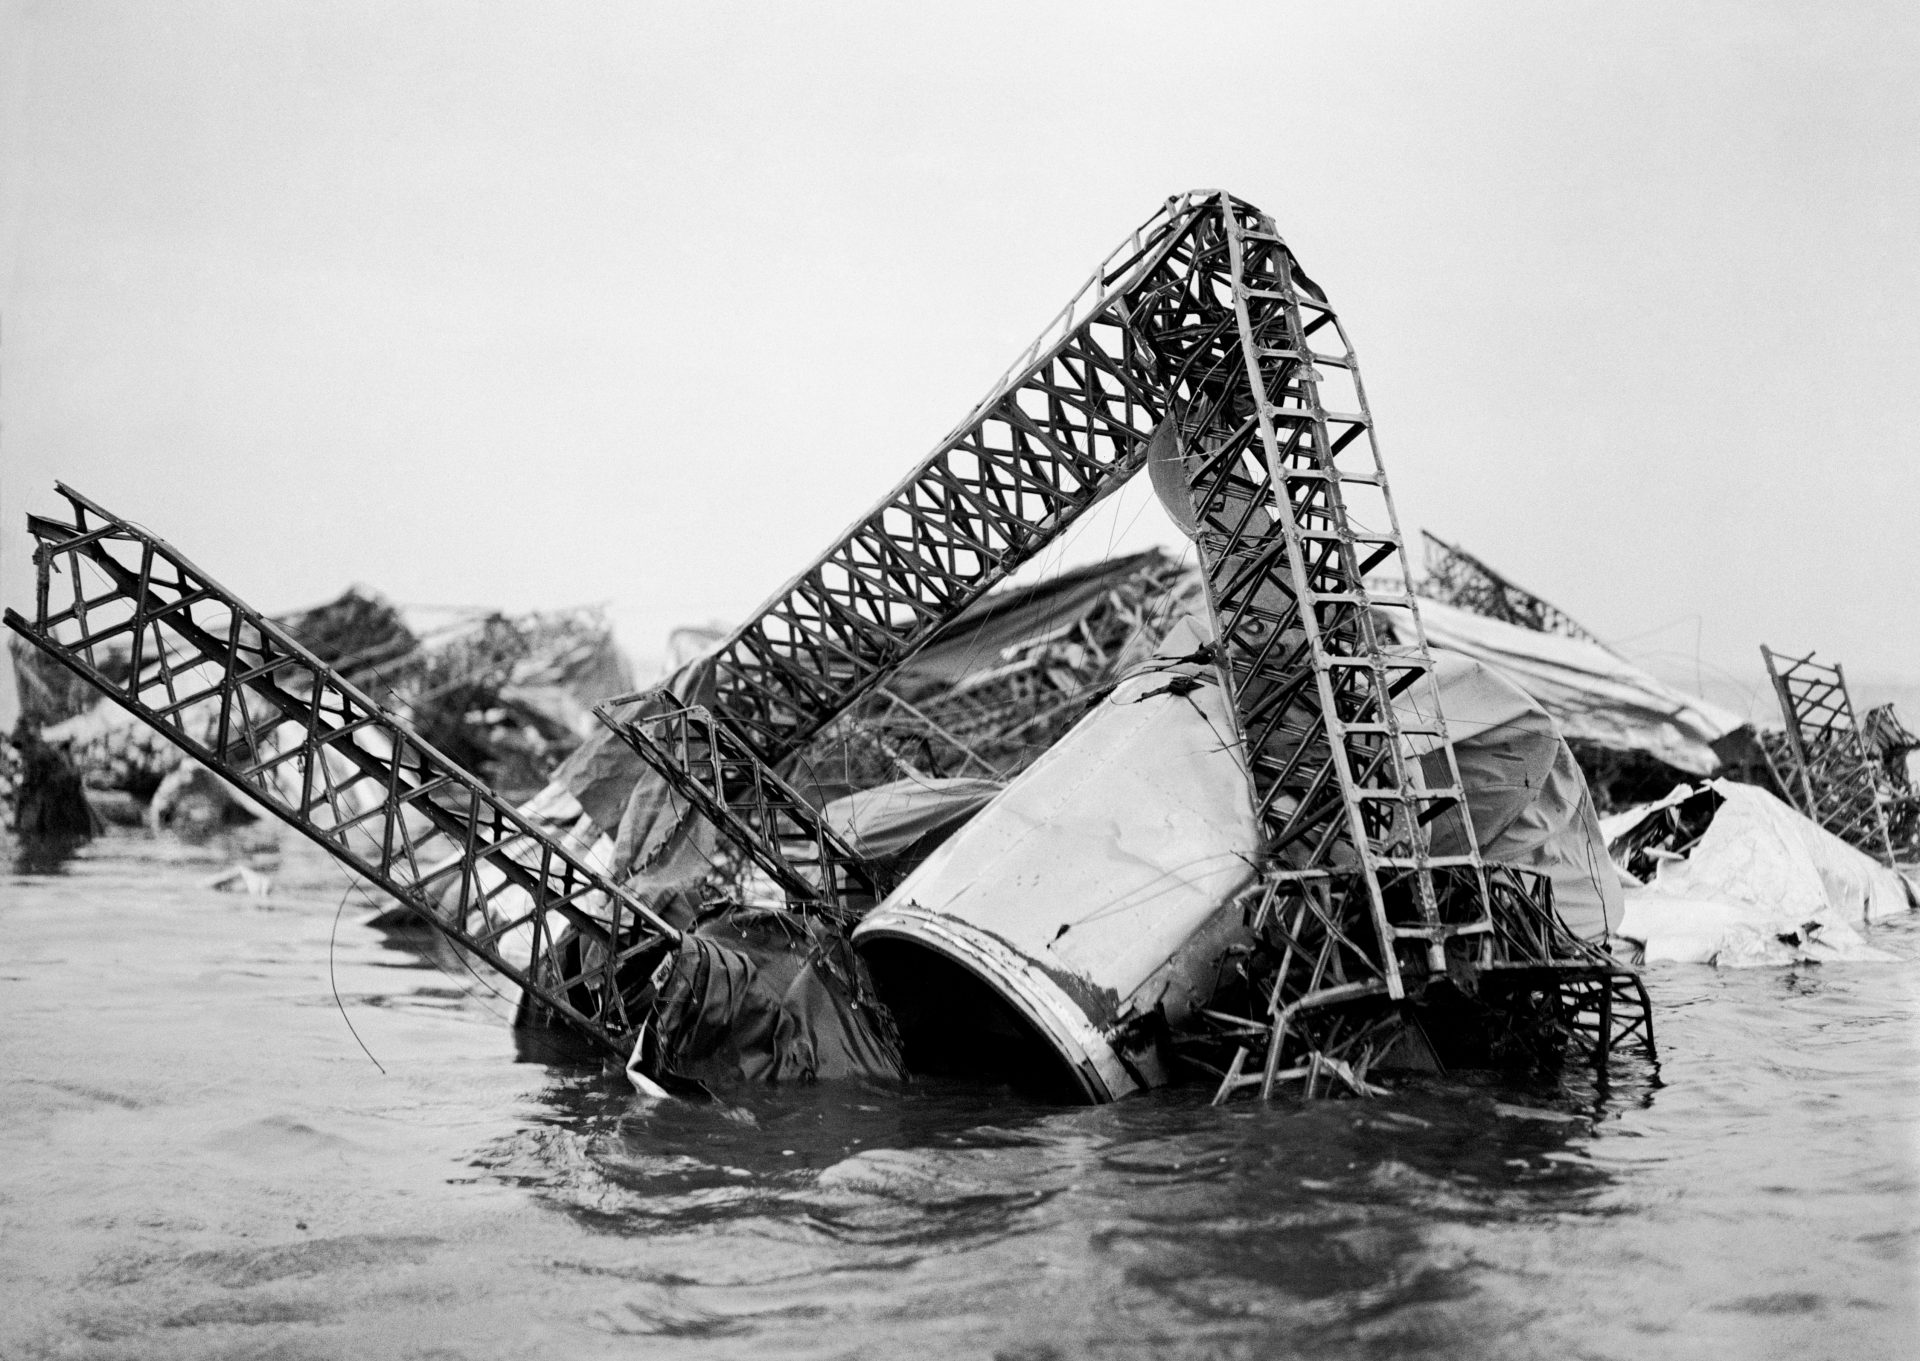 The scene of the airship disaster. The mass of tangled wreckage of the R38 (also known as ZRII) to be seen at low tide in the Humber Estuary. 27 Britons and 16 Americans were killed when the airship exploded during a trial flight over Hull on 24th August 1921. Credit: PA Images